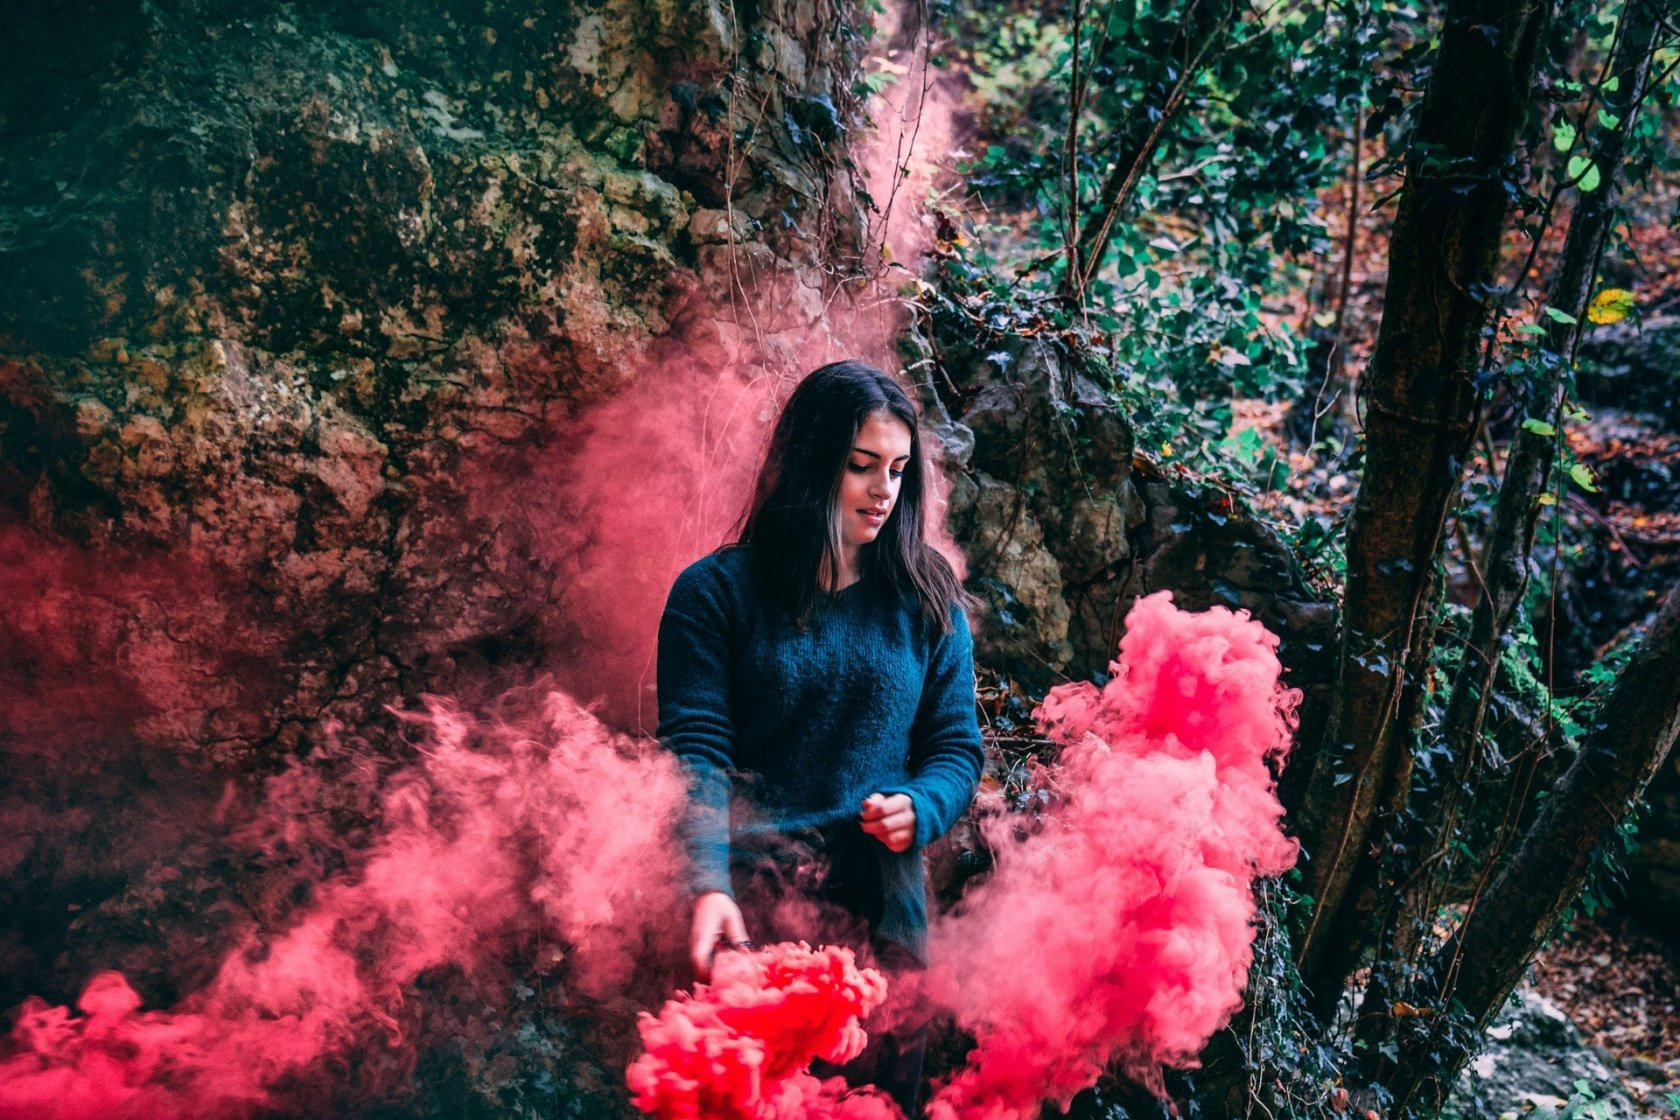 Smoke Bomb Photography You Can Master Quickly and Easily Image4